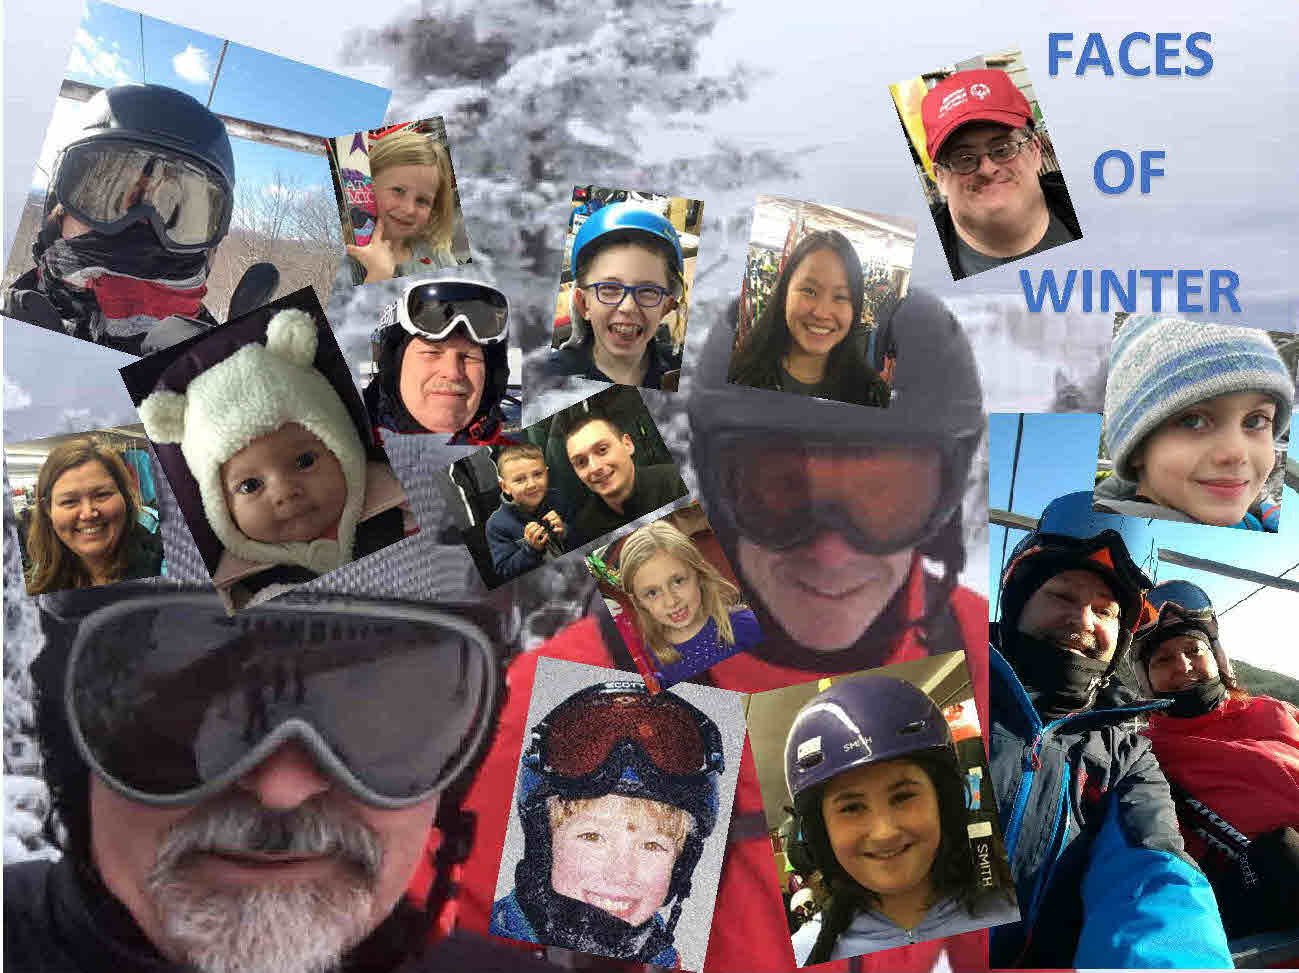 FACES OF WINTER CBS